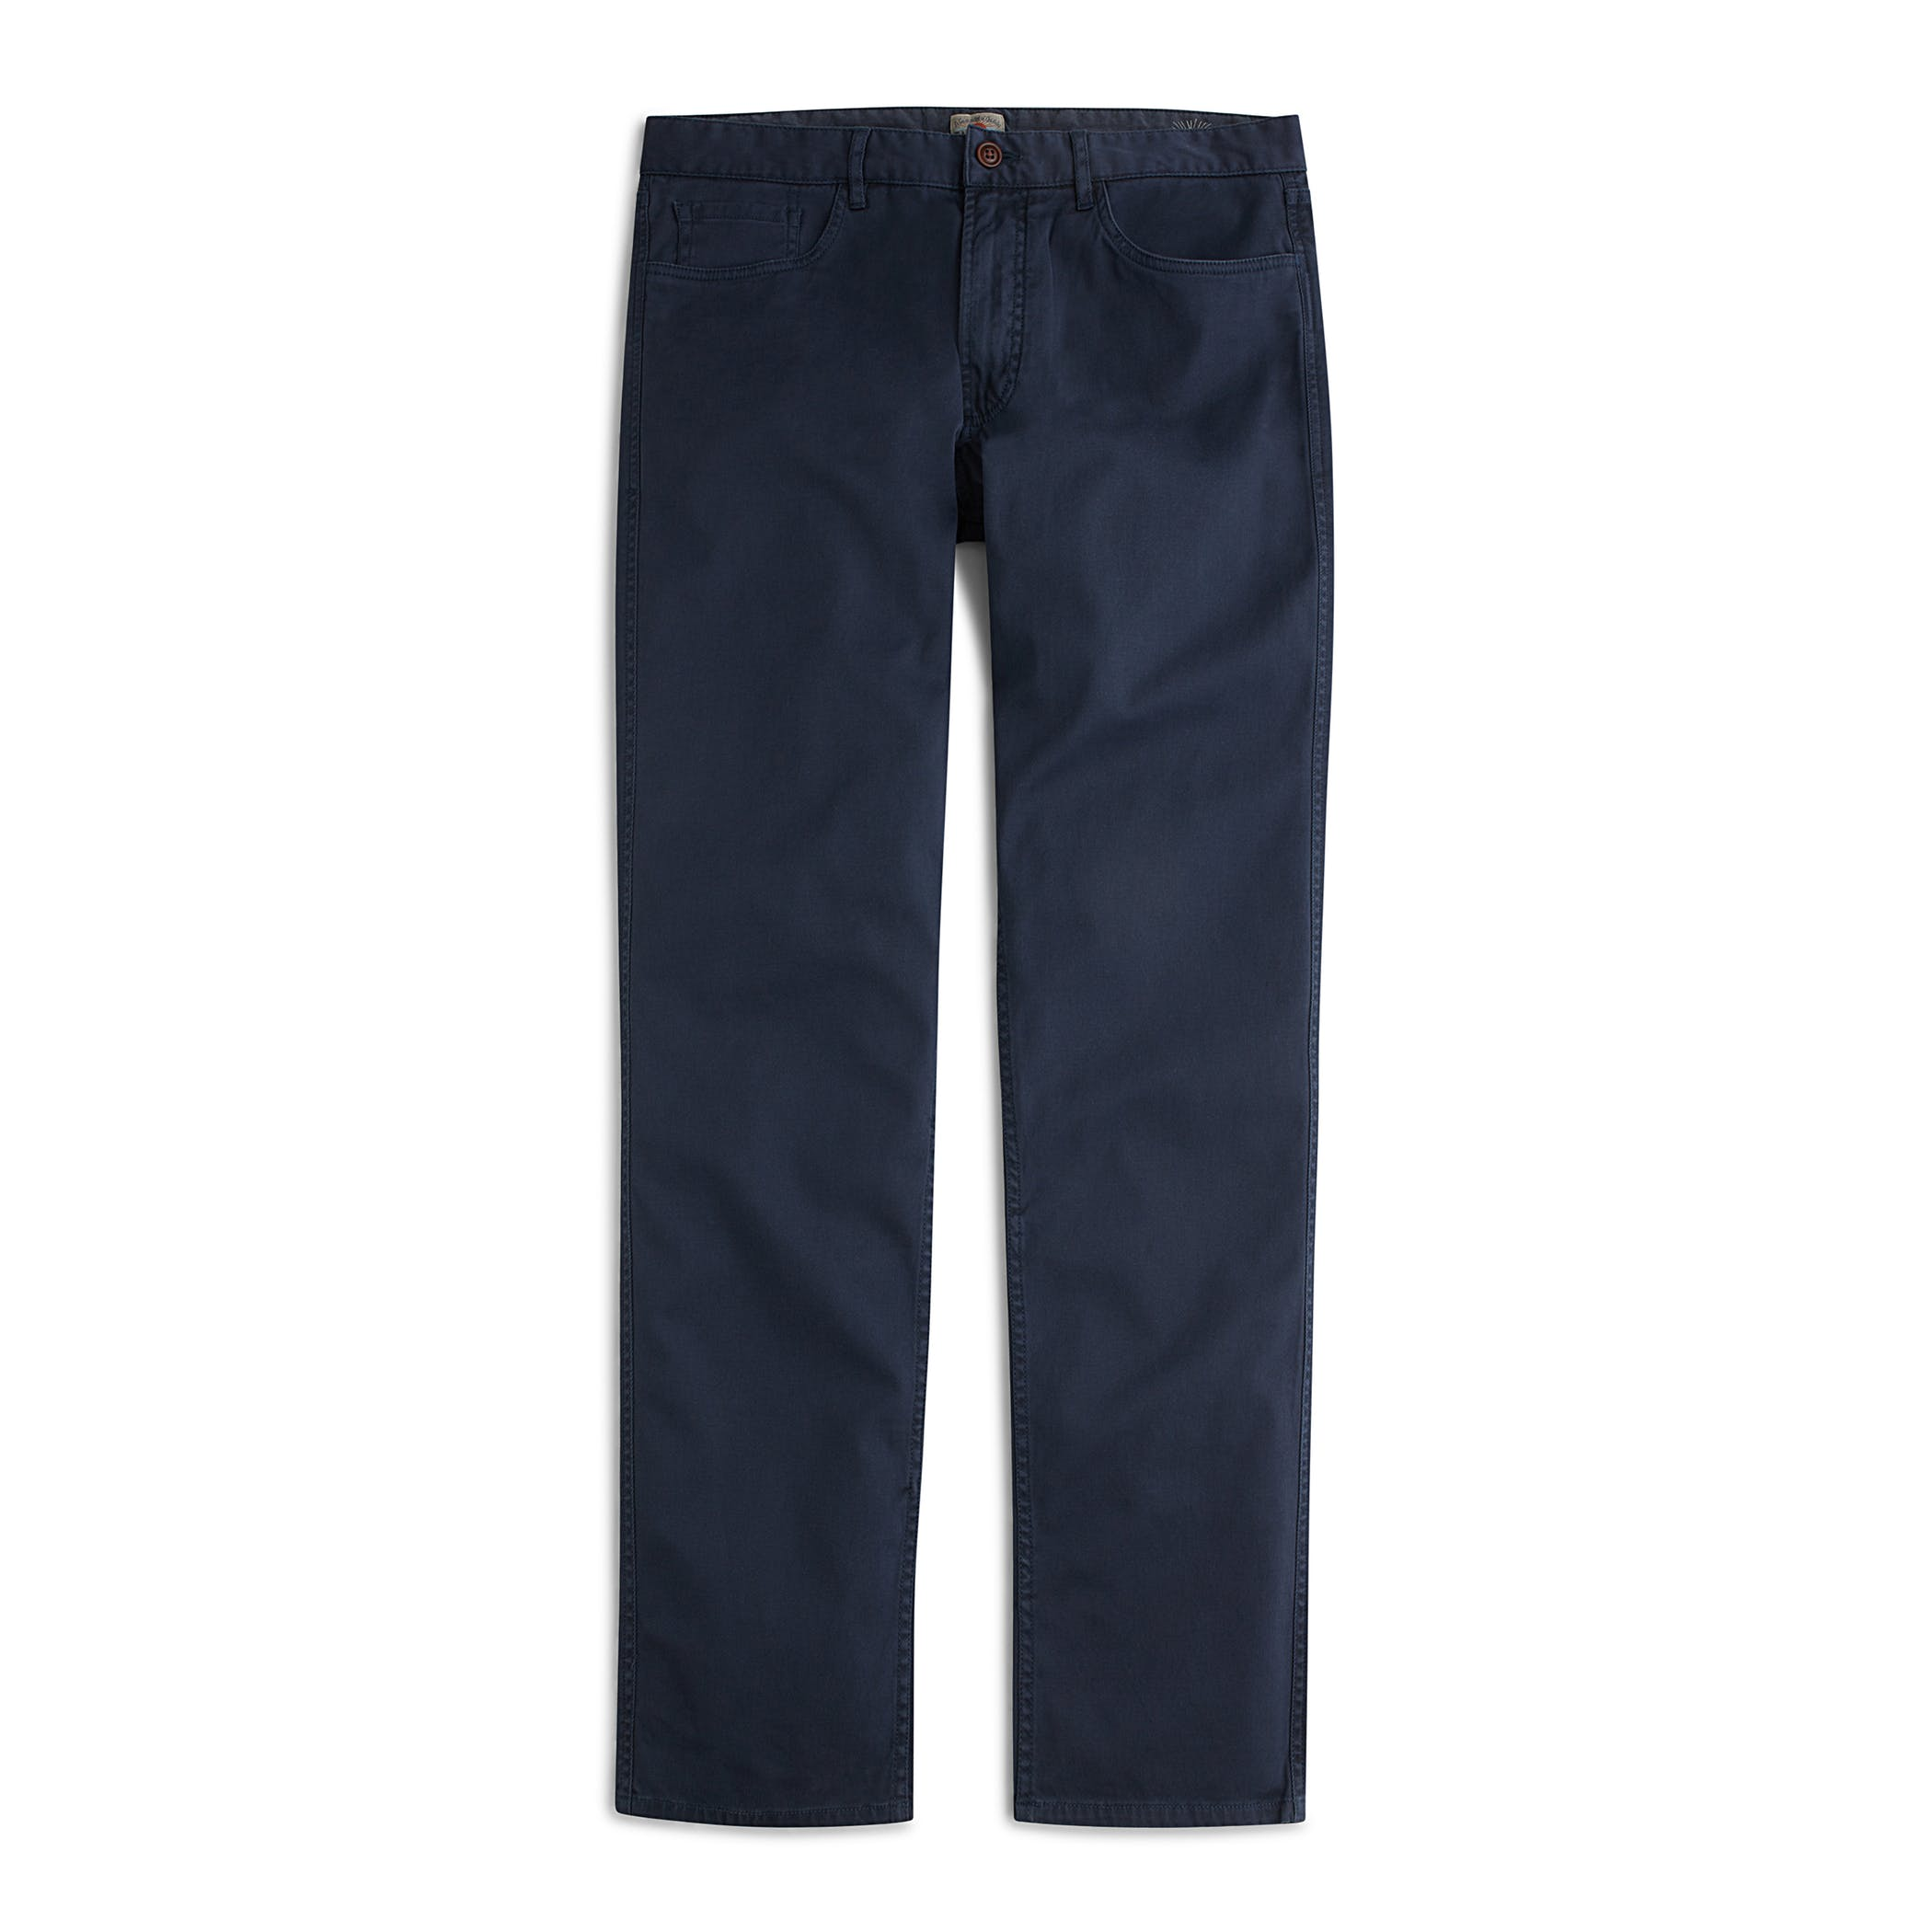 Faherty Comfort Twill 5-Pocket Chinos